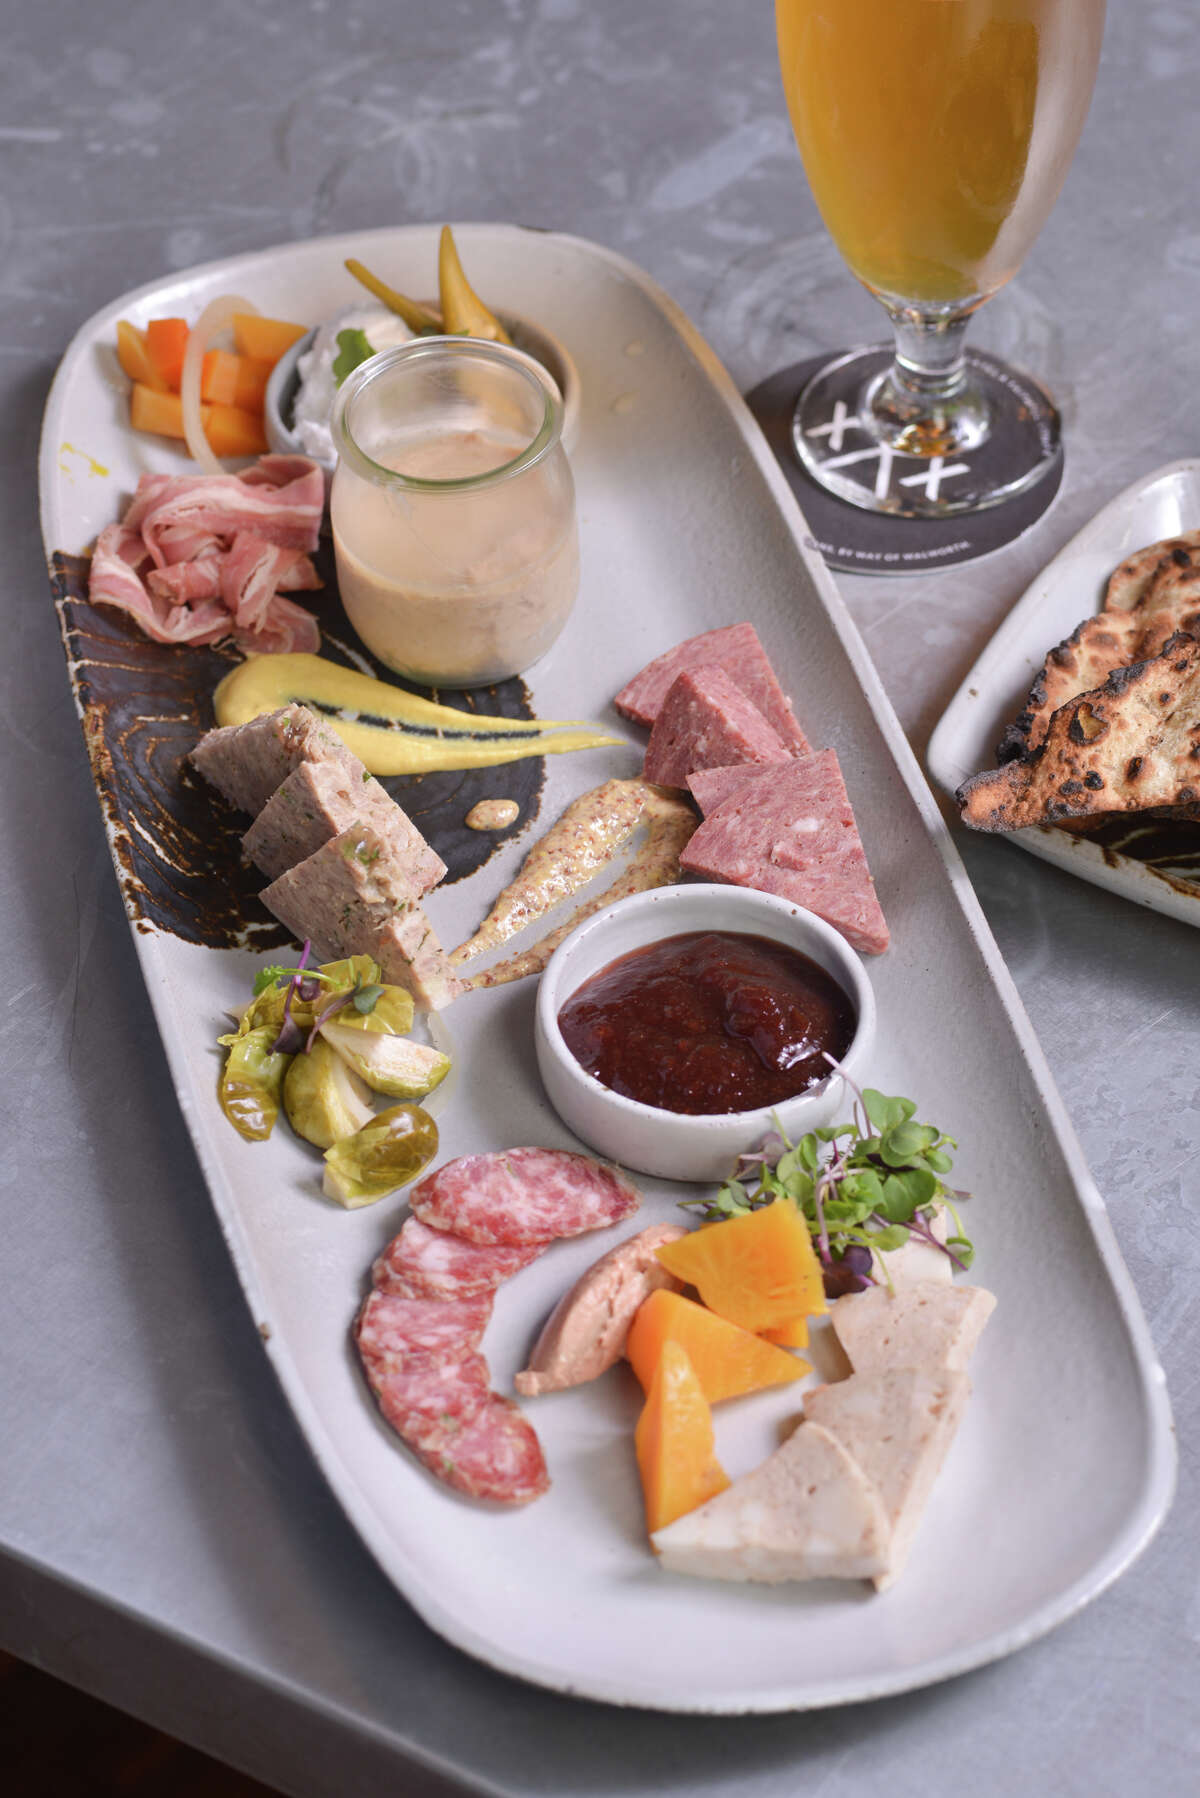 A charcuterie plate from Cured featuring mortadella, chicken liver mousse, jalapeño sauce, apple red wine jam, pickled Brussels sprouts, country style pork pate', smoked veal wurst, smoked lamb belly, and whipped pork butter and beer flatbread.